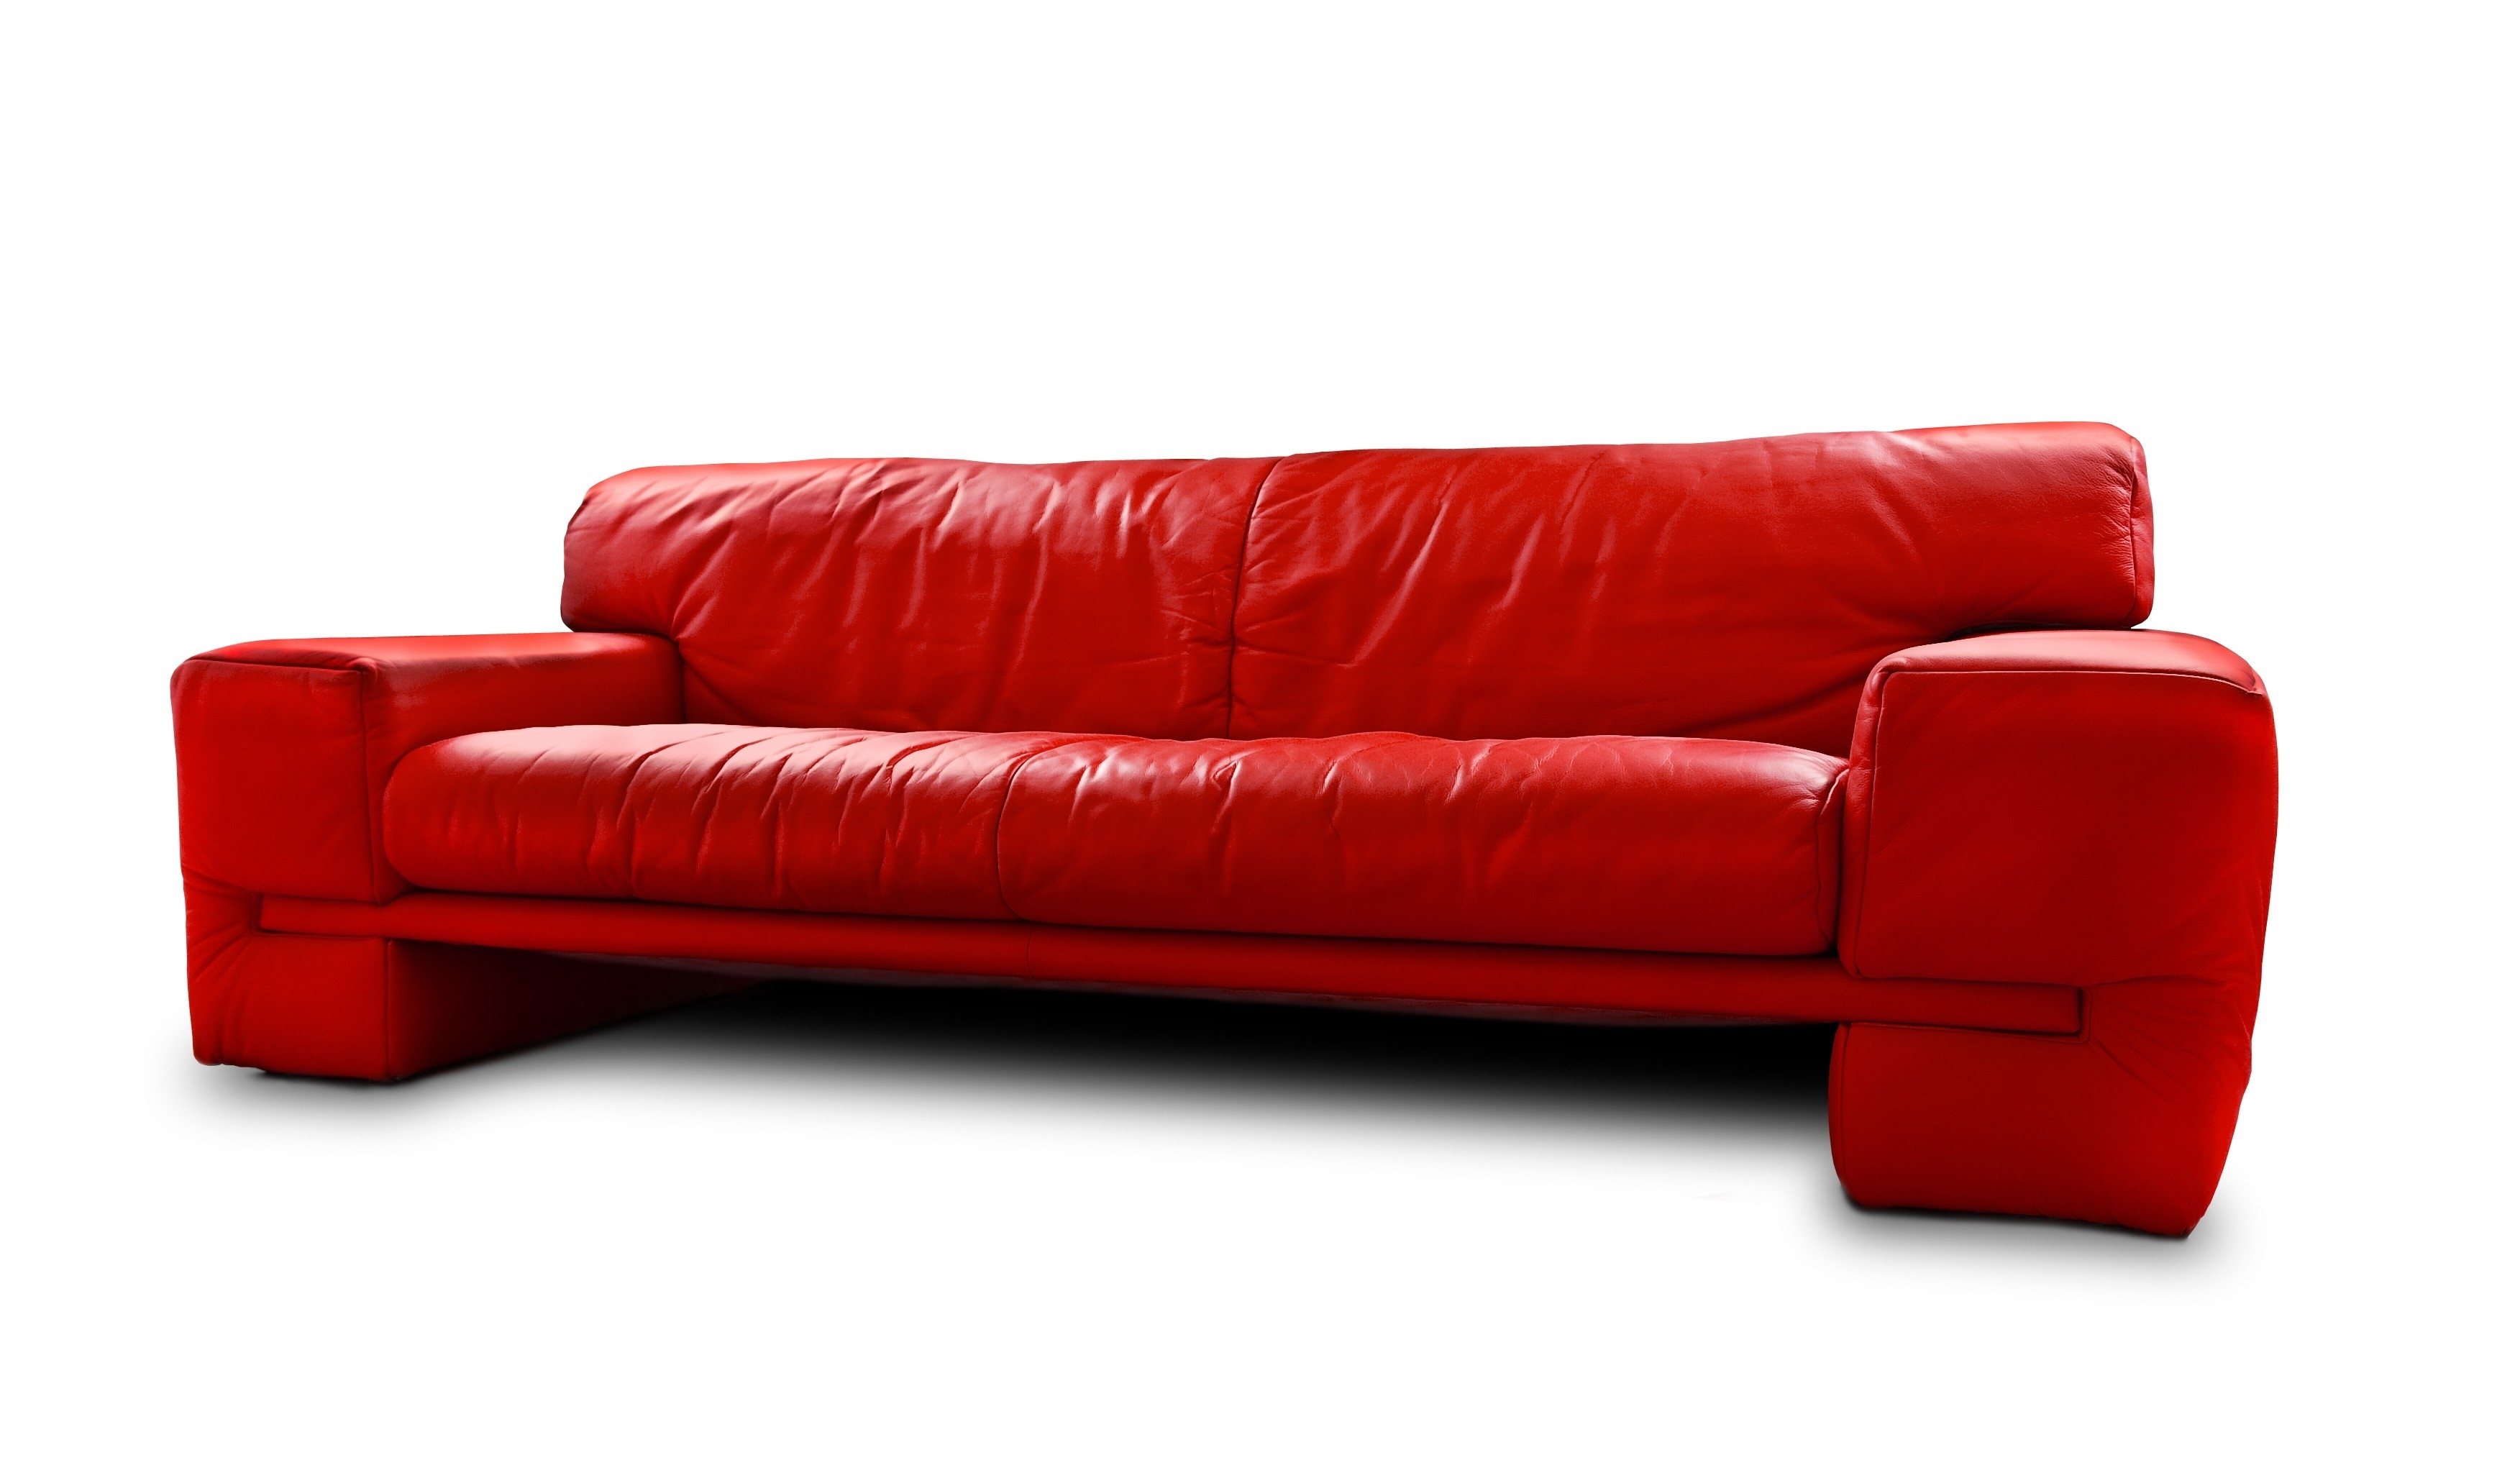 Popular Of Red Leather Sleeper Sofa Coolest Living Room Remodel Inside Cool Sofa Ideas (Image 10 of 15)